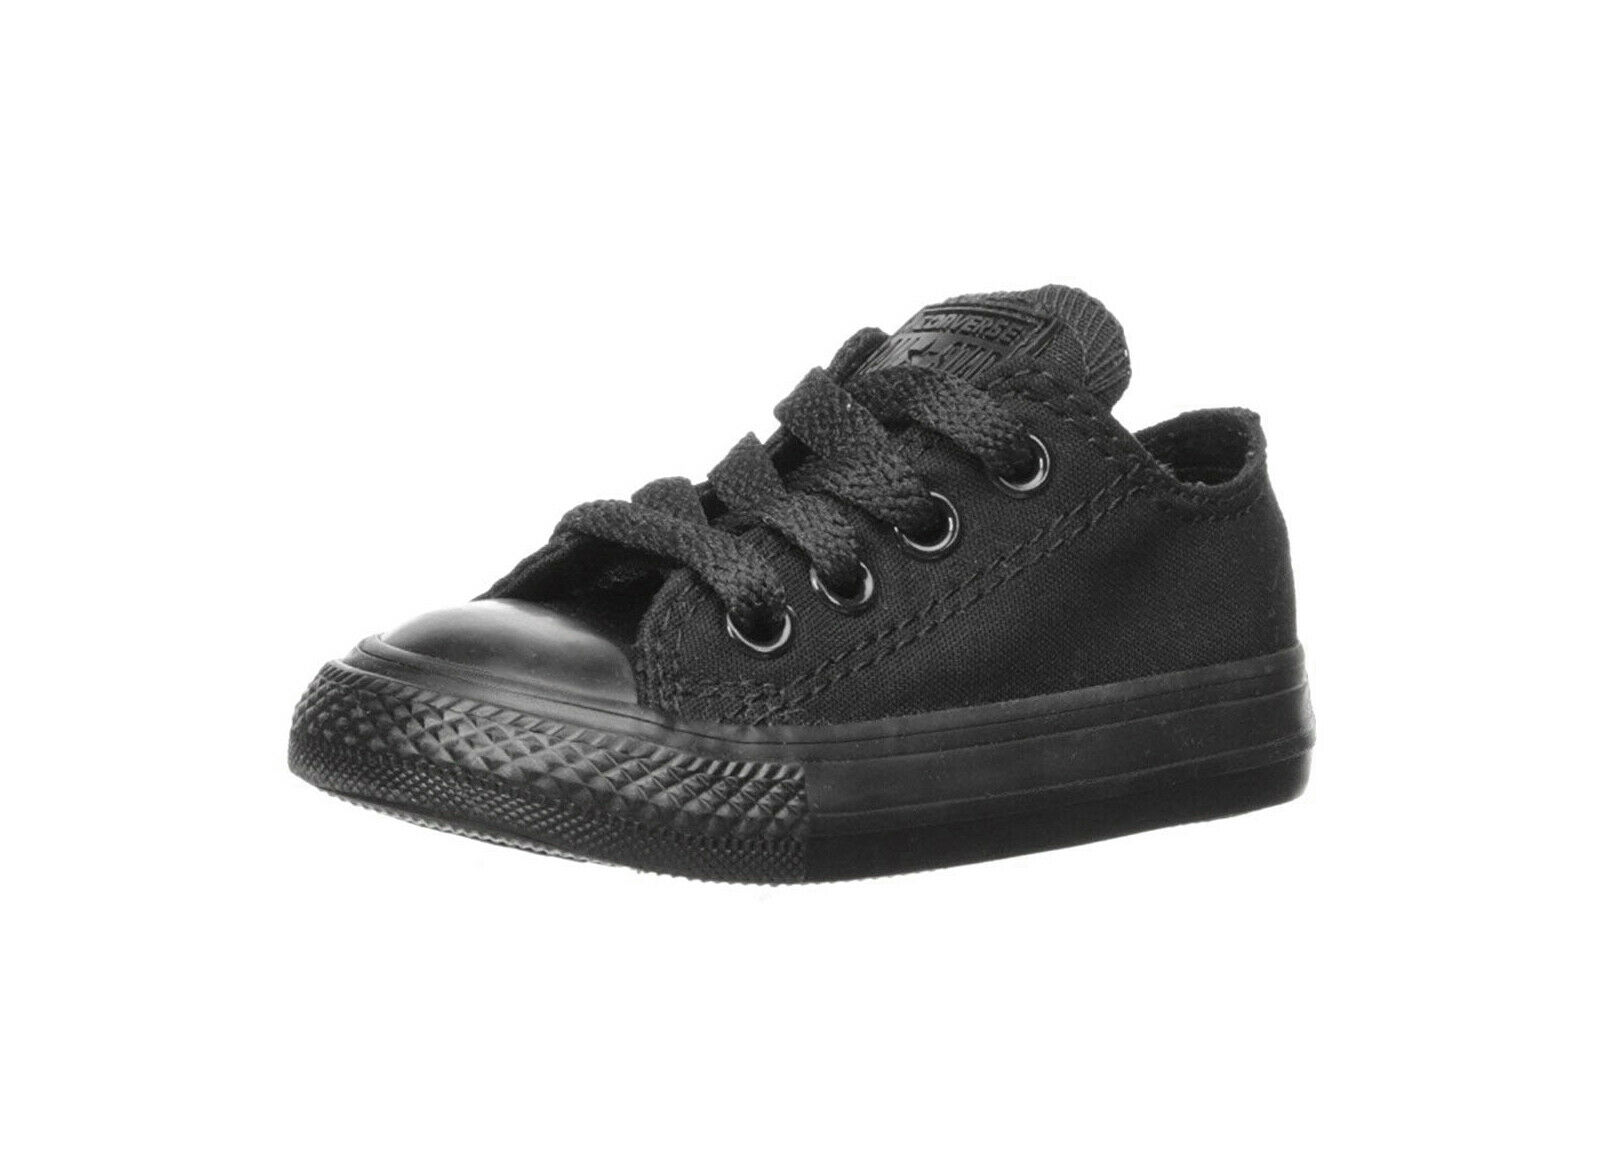 Converse Infant All Star Low Top Shoes All Black Chucks Toddler Girls 714786